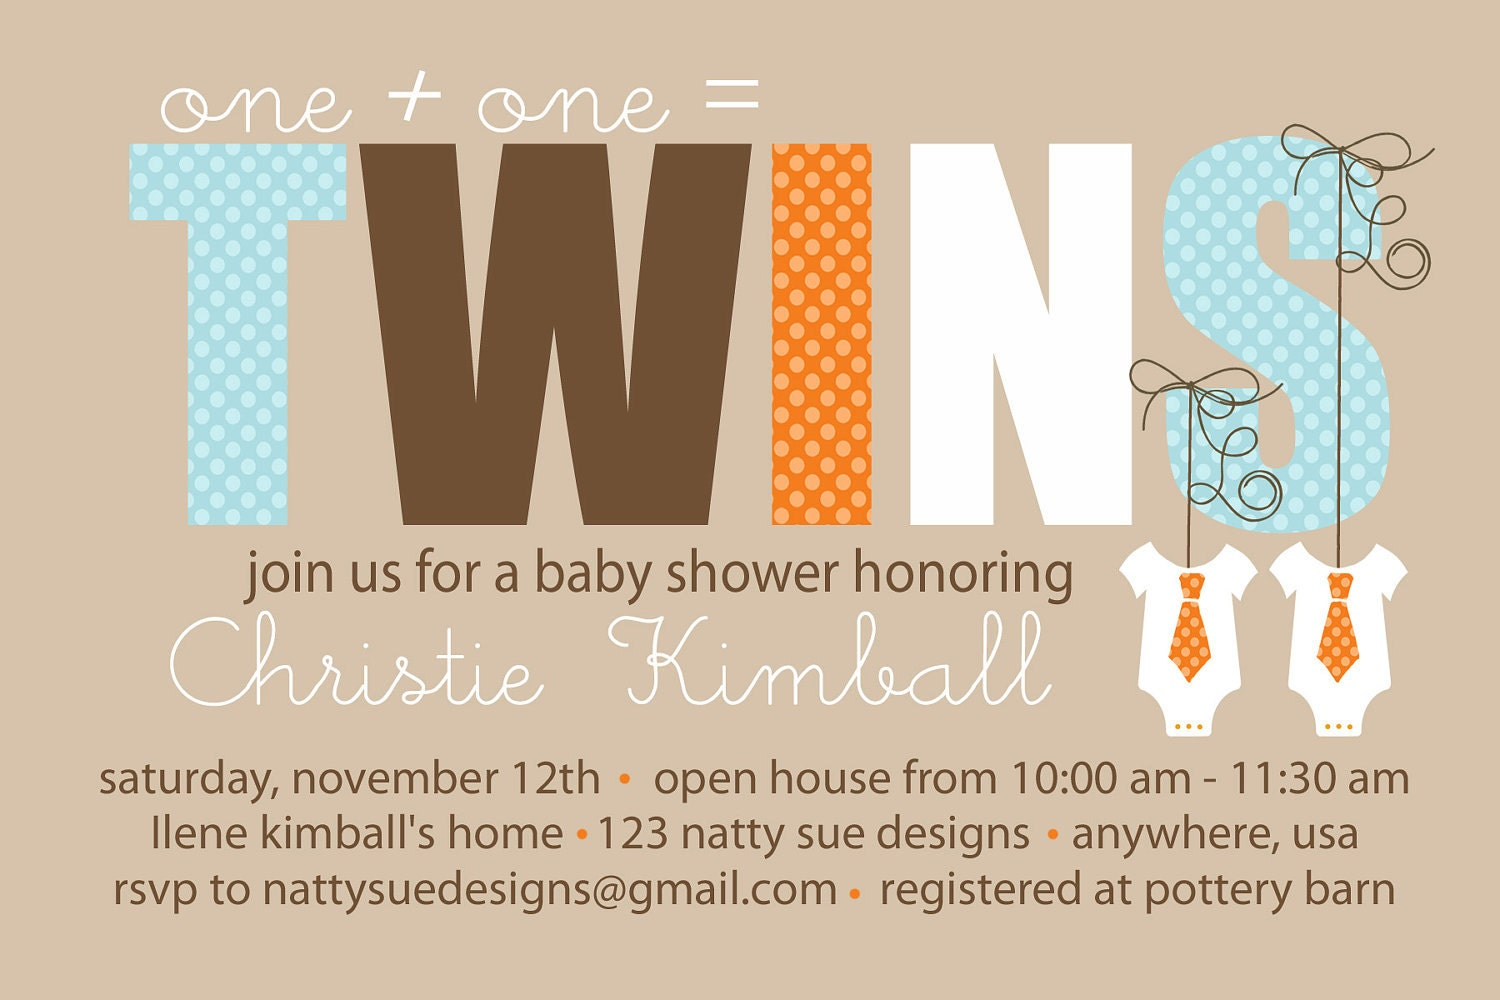 twins custom baby shower invitation by nattysuedesigns1 on etsy